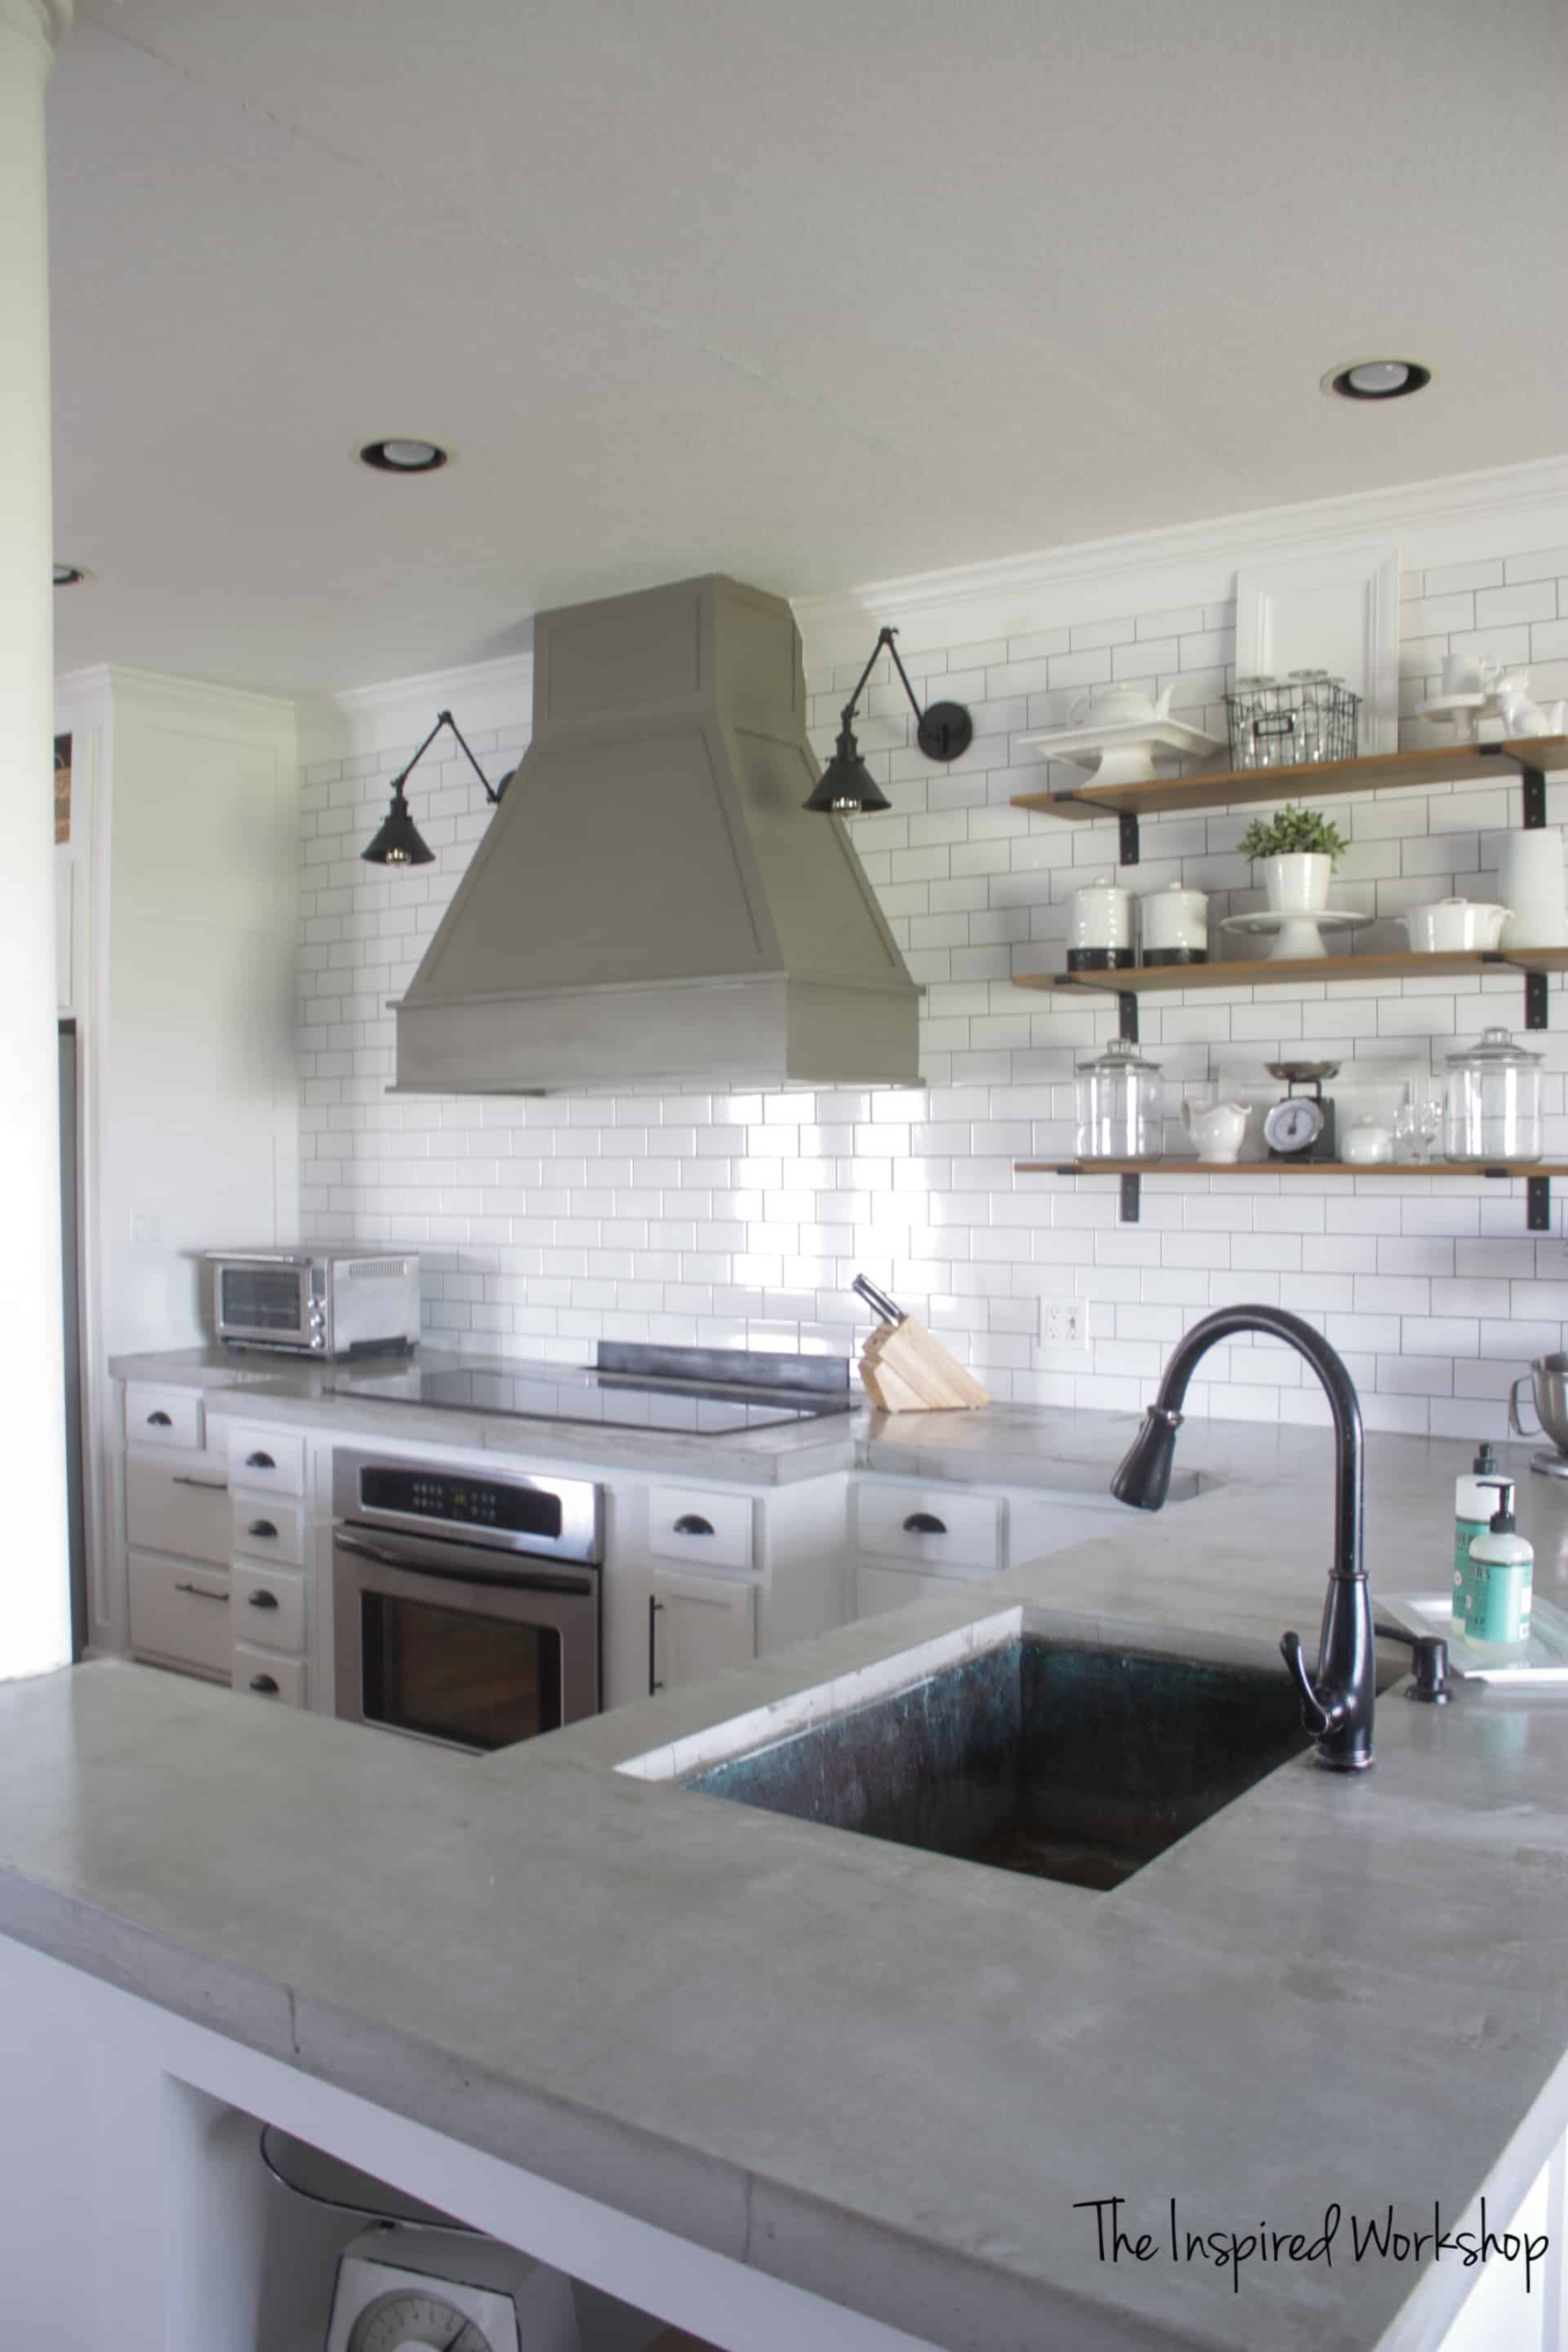 17 DIY Countertops to Update Your Kitchen this Weekend on a Budget: Concrete Counters